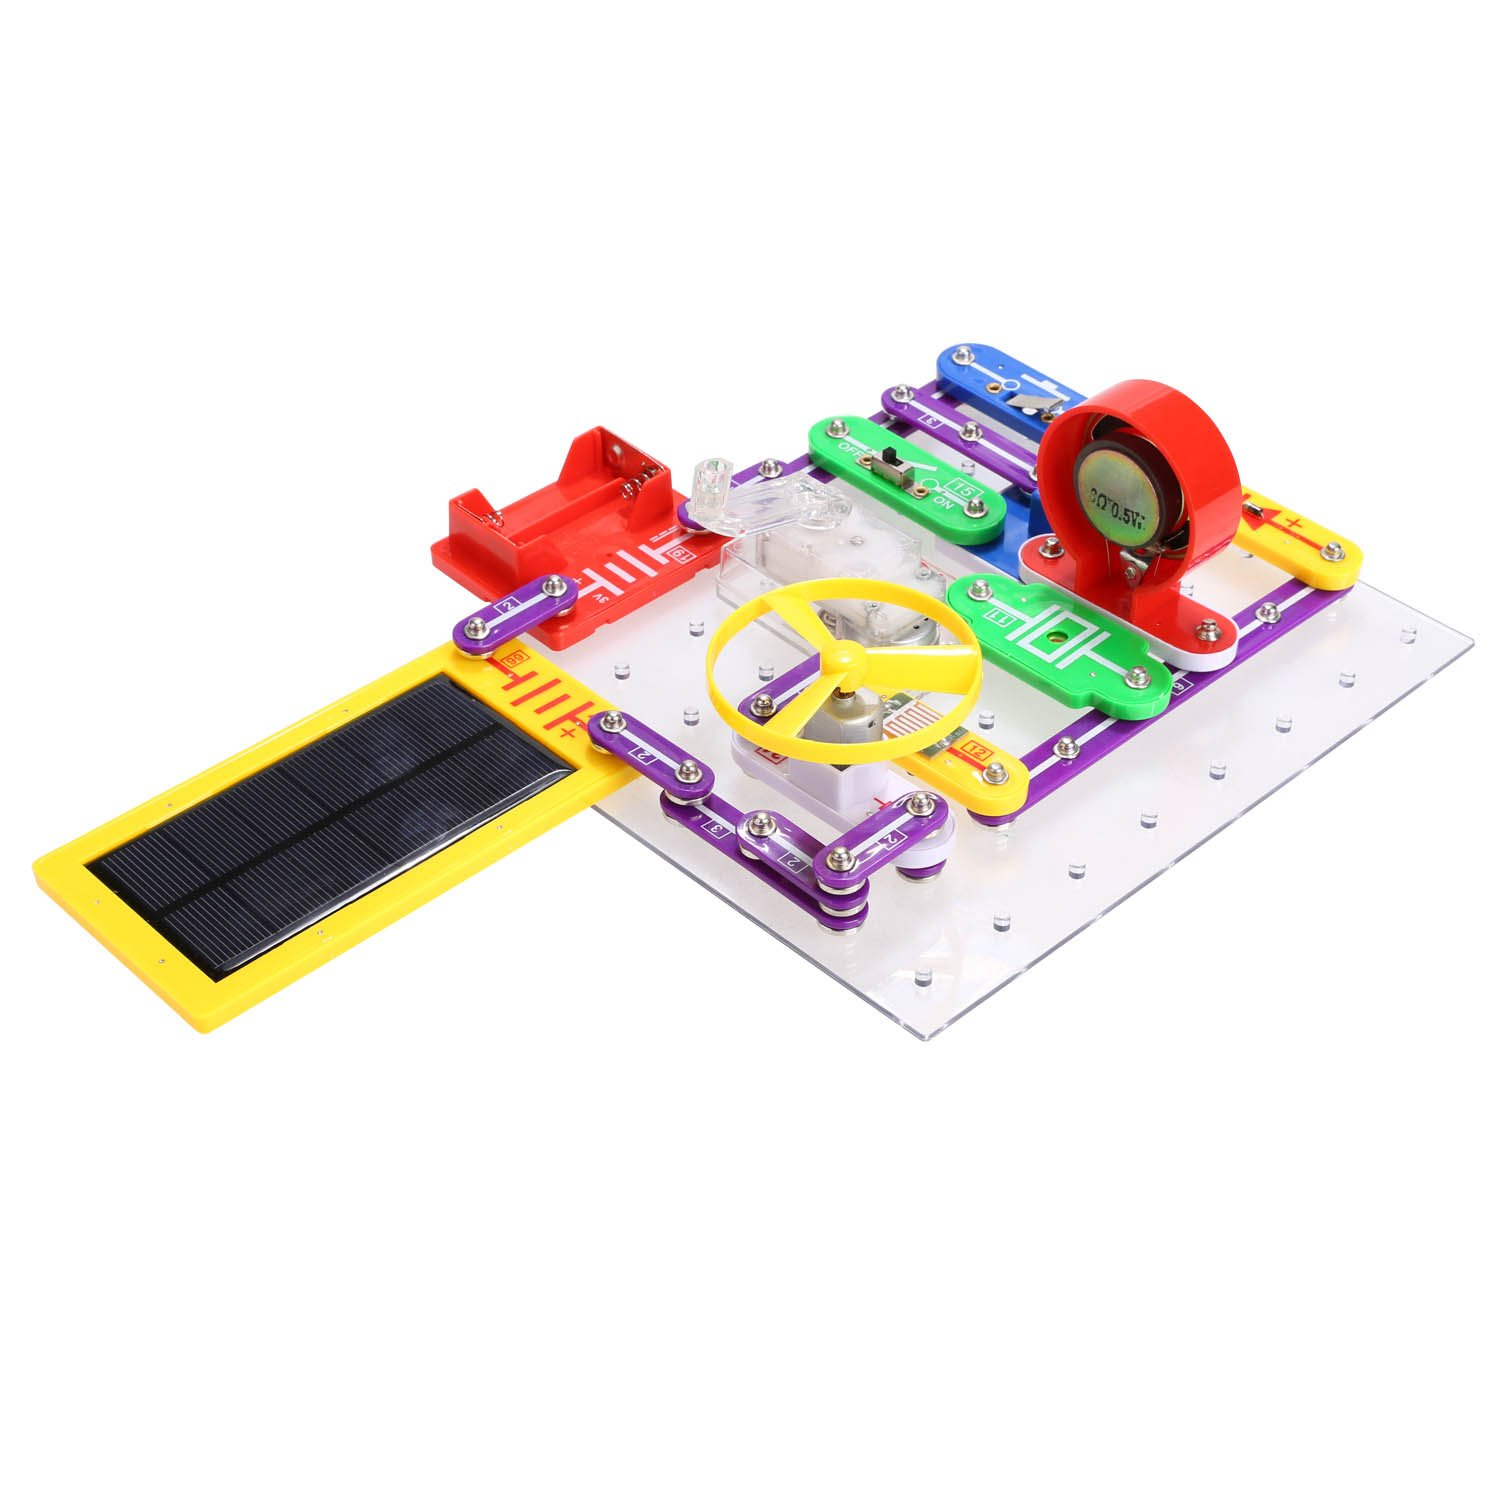 Anfan Electric Circuits Kitkids Electronics Exploration Amazoncom Snap Motion Discovery Kit Toys Kitsolar Block Diy Toy For Child Type 2 Games